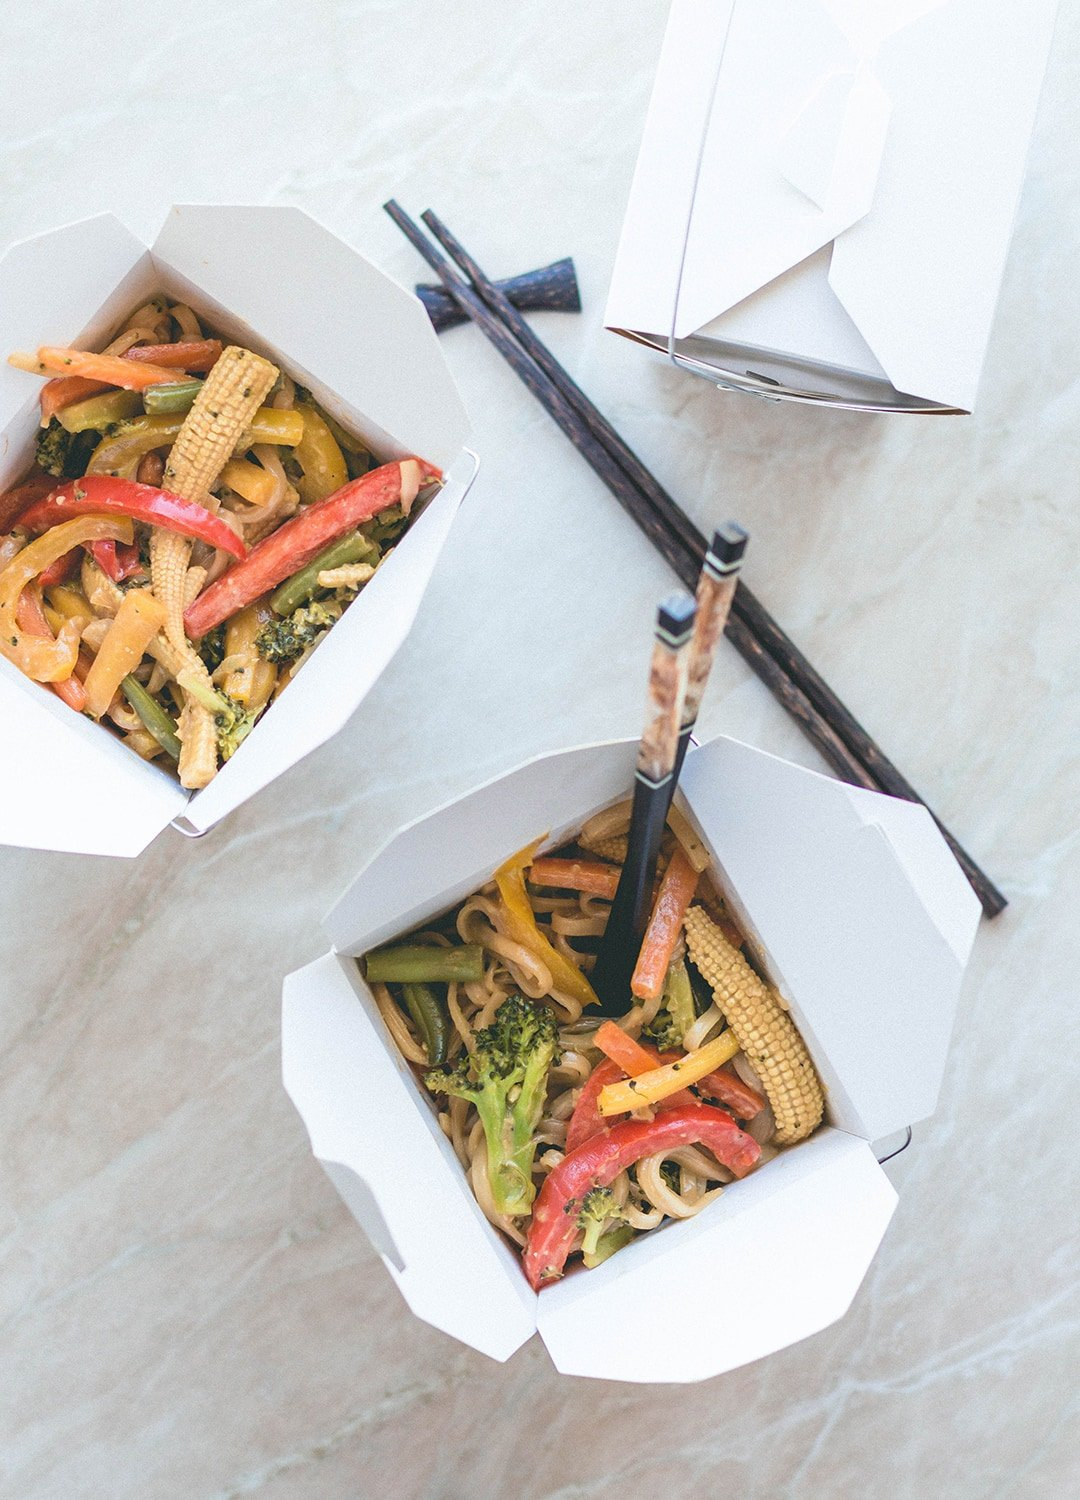 Vegetable Stir Fry with Rice Noodles and Sunflower Seed Sauce - delicious vegan stir fry with peanut-free sauce made with tamari, sunflower seed butter, maple syrup, sesame oil, and ACV. You'll love this recipe! | thehealthfulideas.com